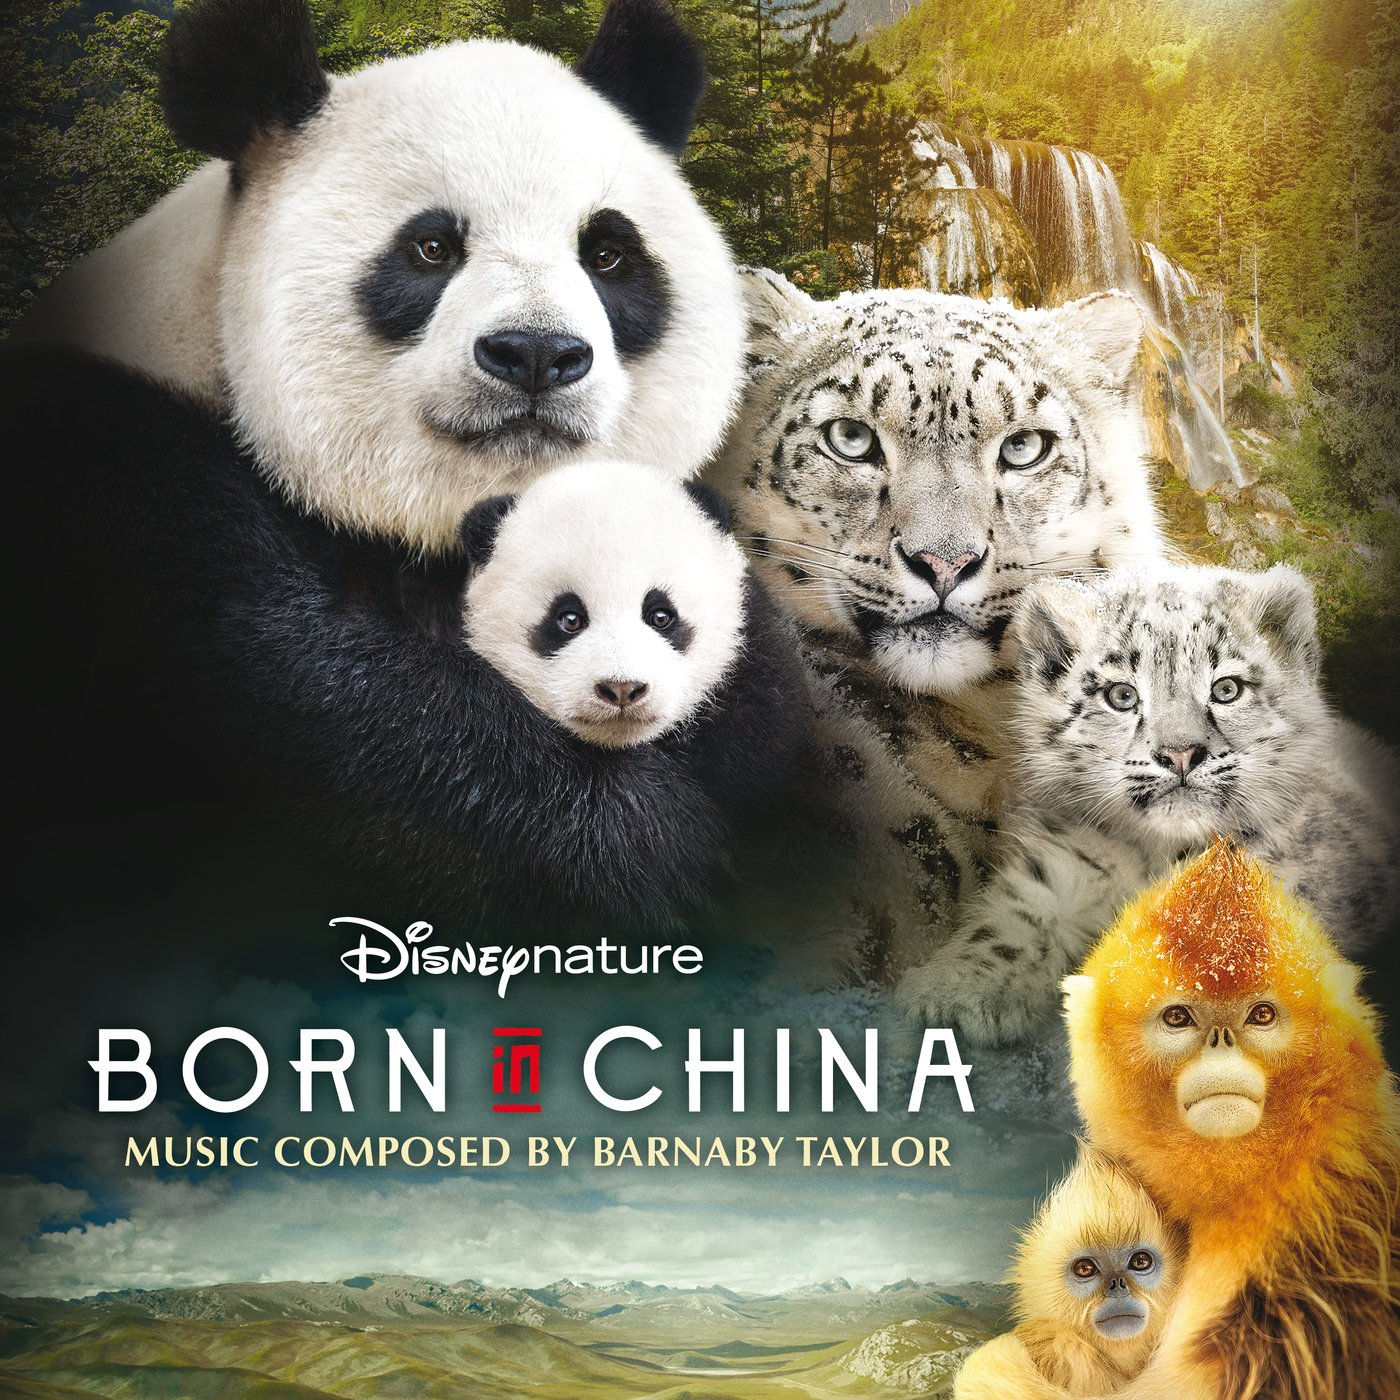 bande originale soundtrack ost score nés chine born china disneynature